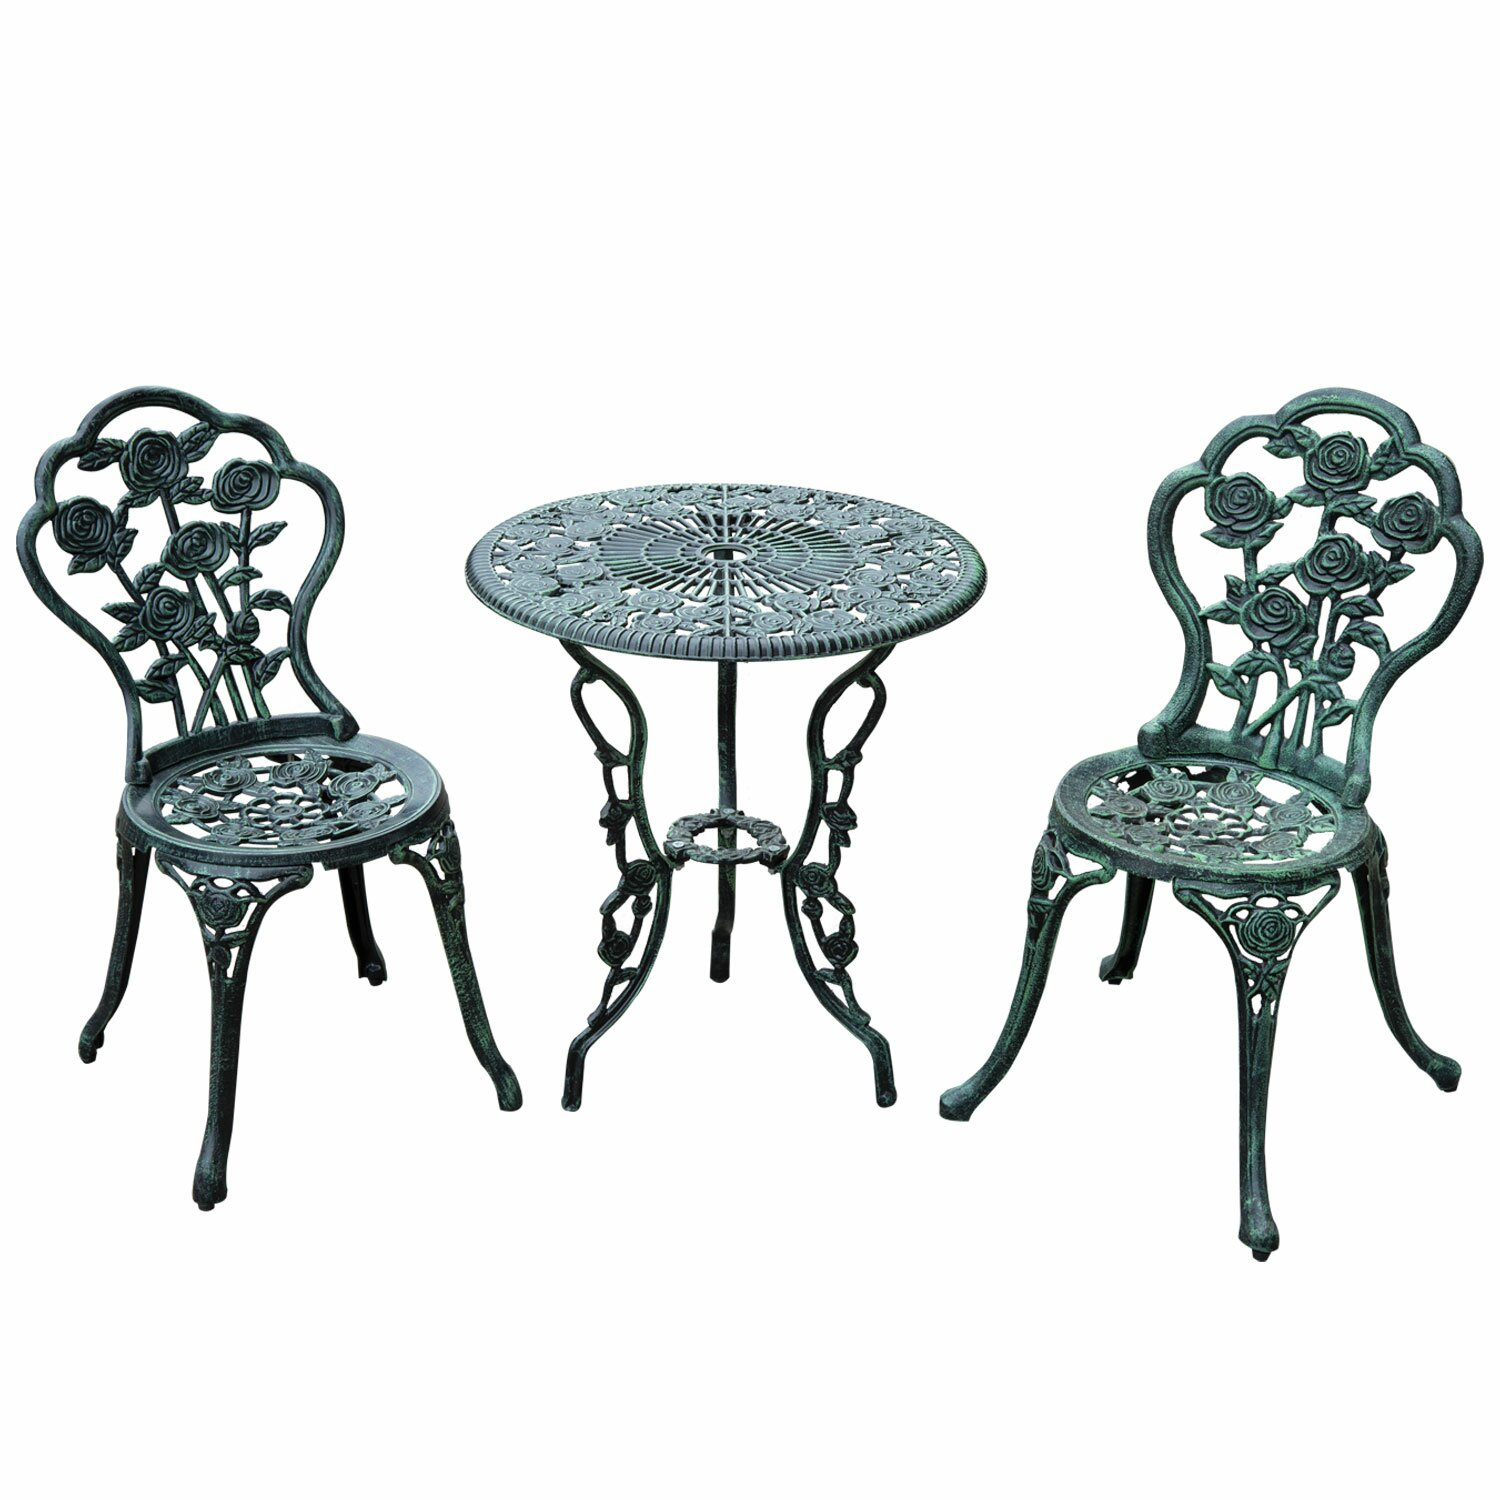 Outsunny 3 Piece Bistro Set Amp Reviews Wayfair